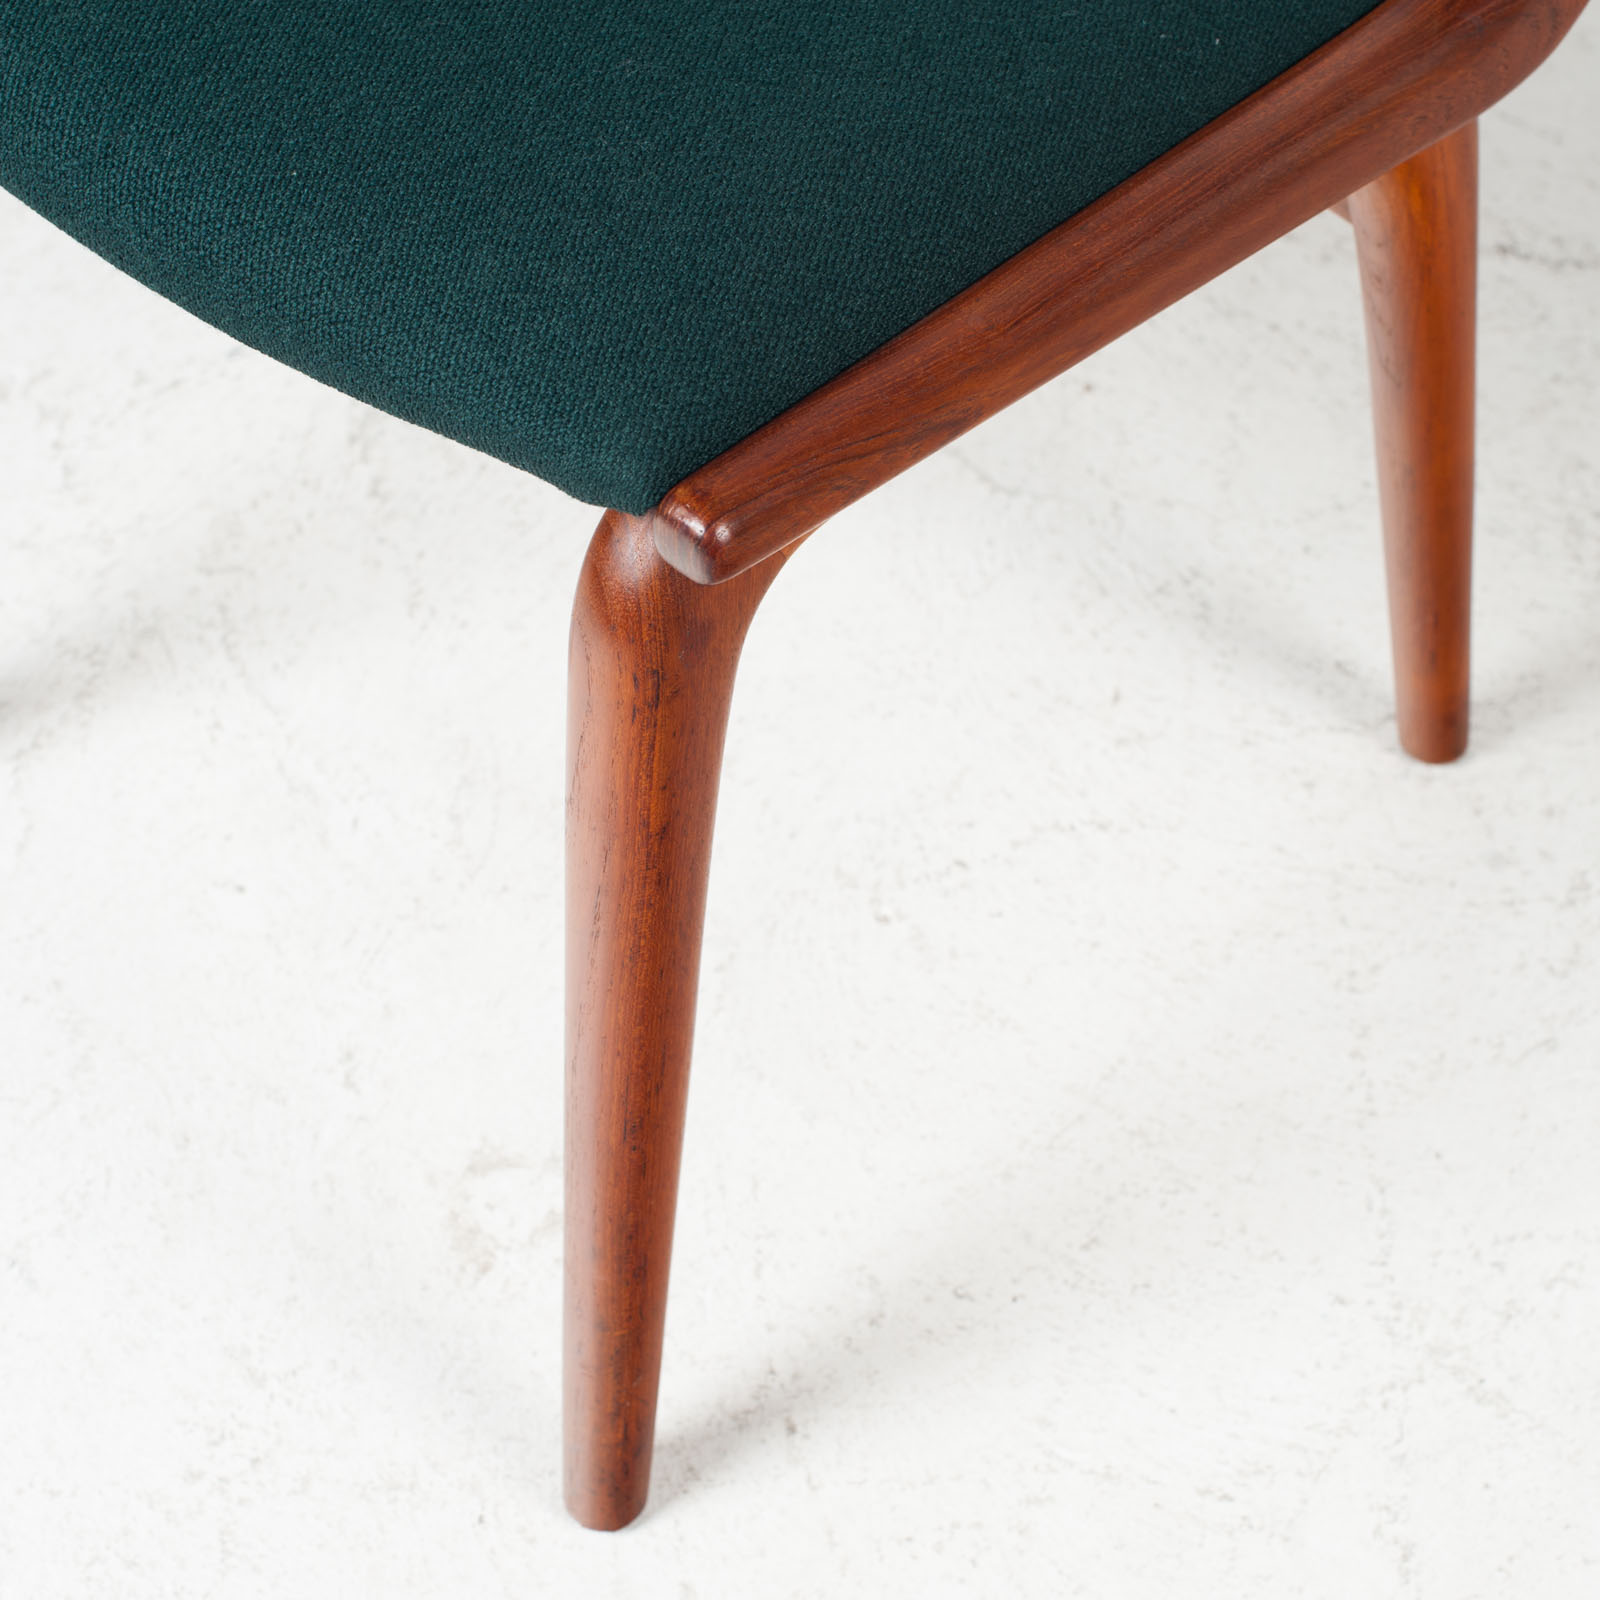 Set Of 6 Model 370 'boomerang' Dining Chair By Alfred Christensen In Teak For Slagelse Mobelfabrik 1950s Denmark 03